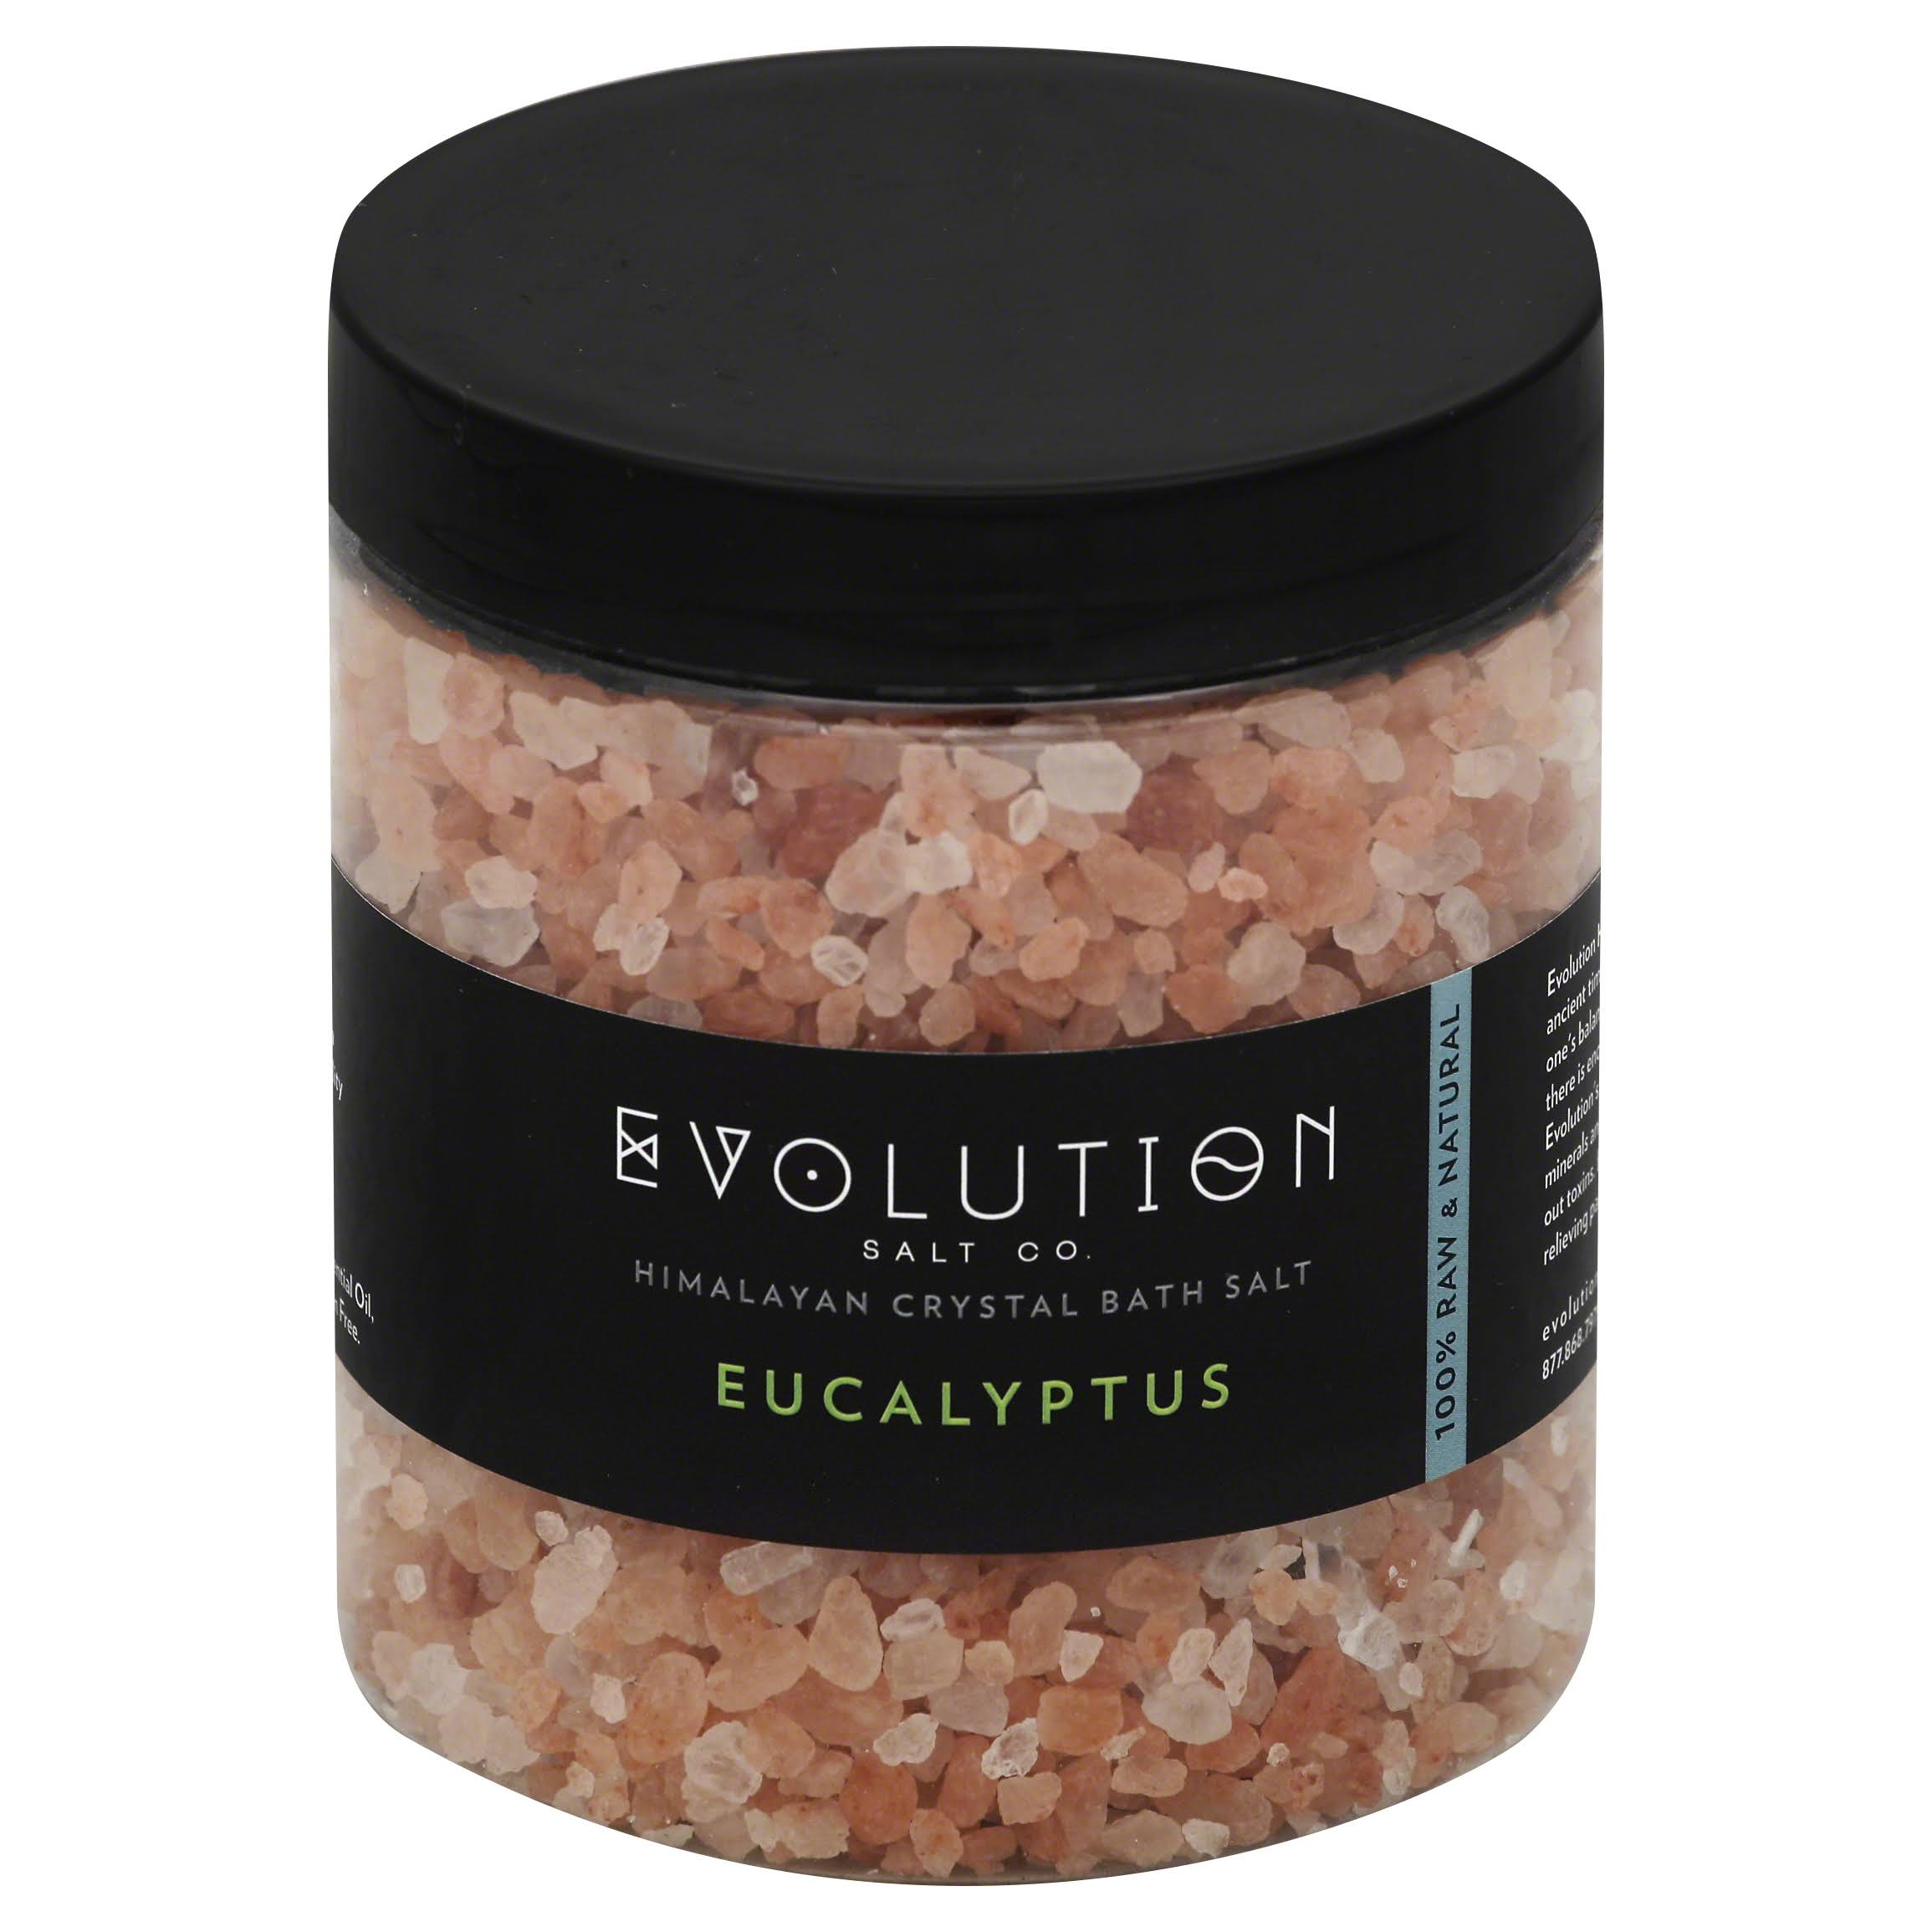 Evolution Himalayan Coarse Bath Salt - 26oz, Eucalyptus